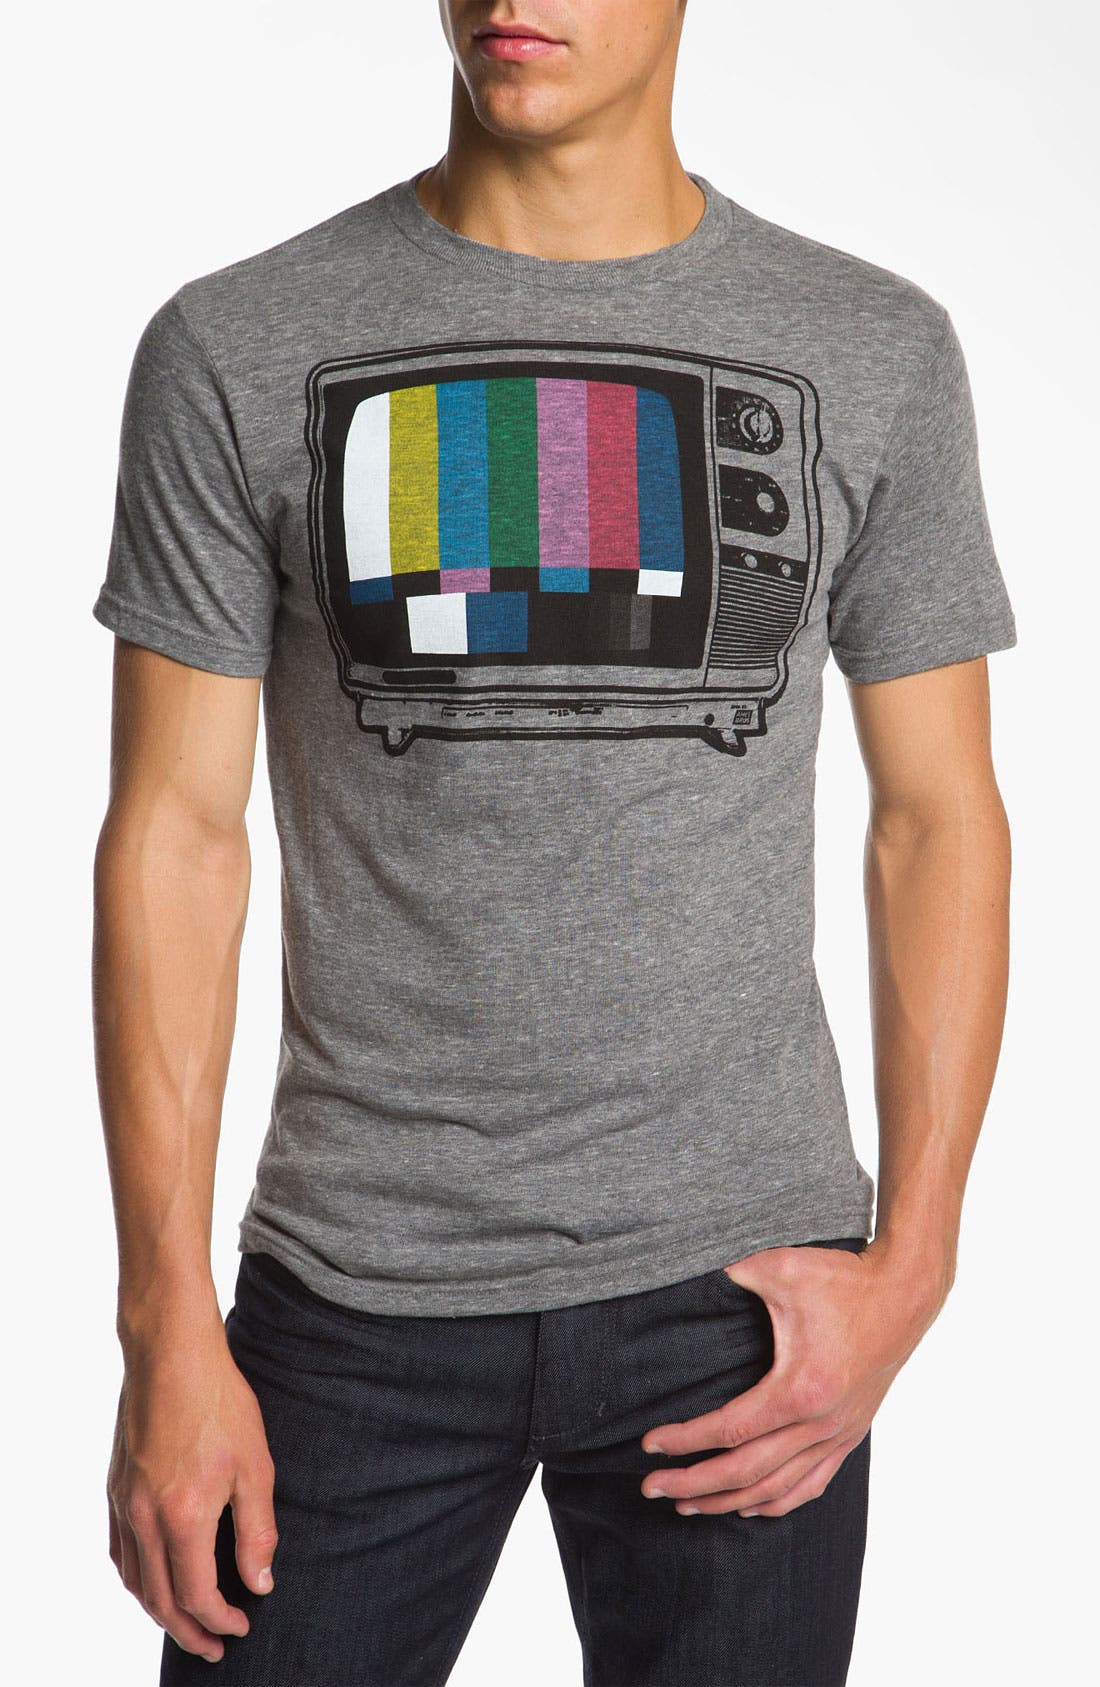 Alternate Image 1 Selected - Ames Bros 'Off Air' Trim Fit Graphic Tee